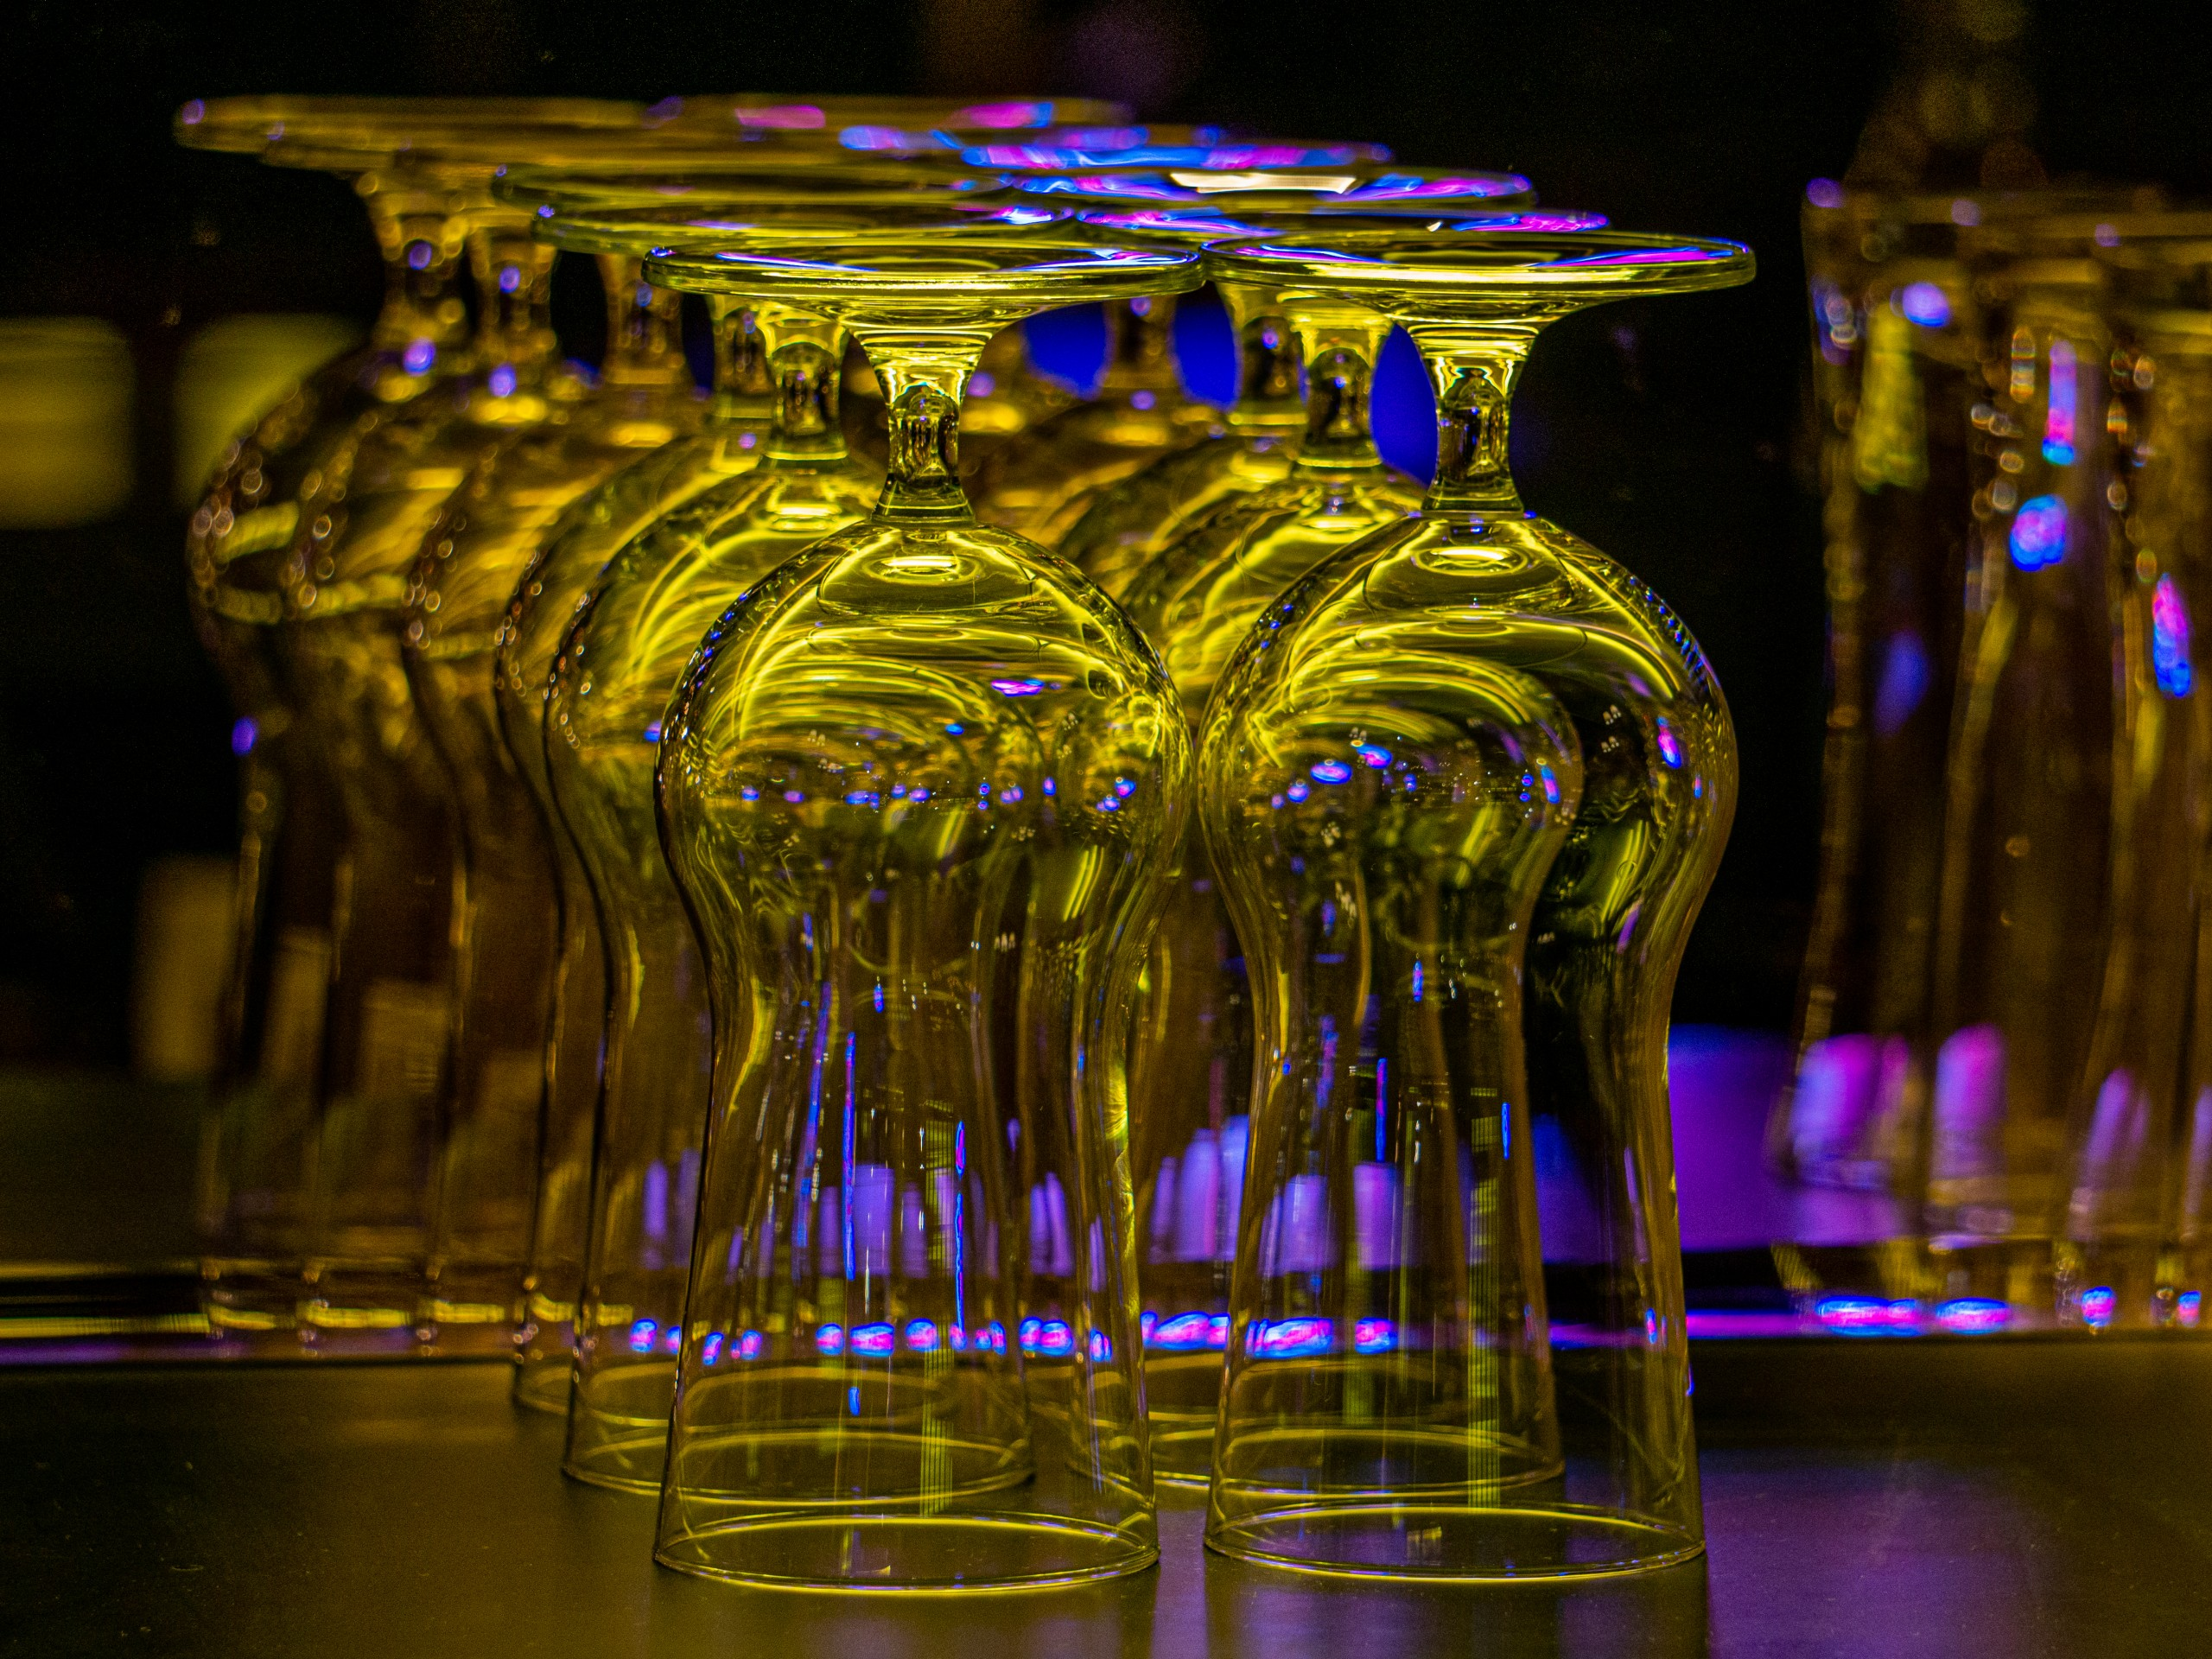 Bar Glasses on Focus